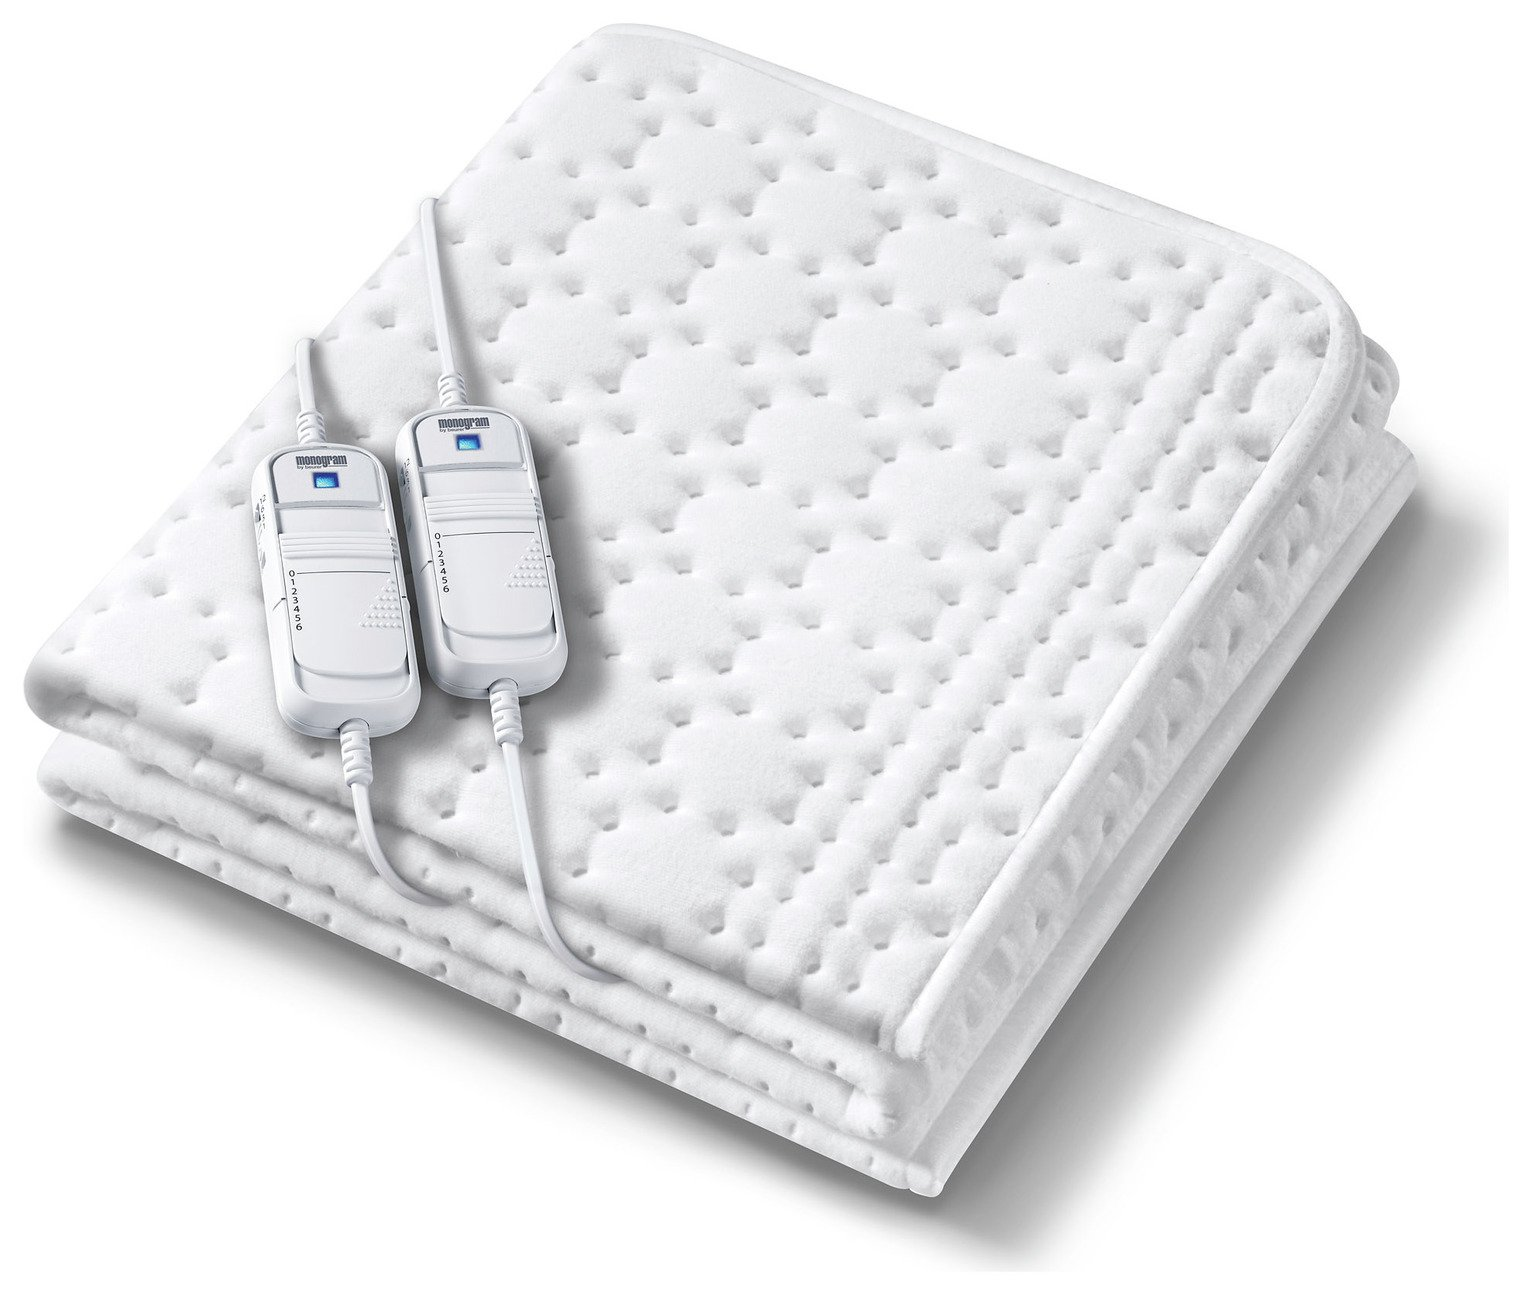 Image of Beurer Allergyfree Dual Control Heated Blanket - Kingsize